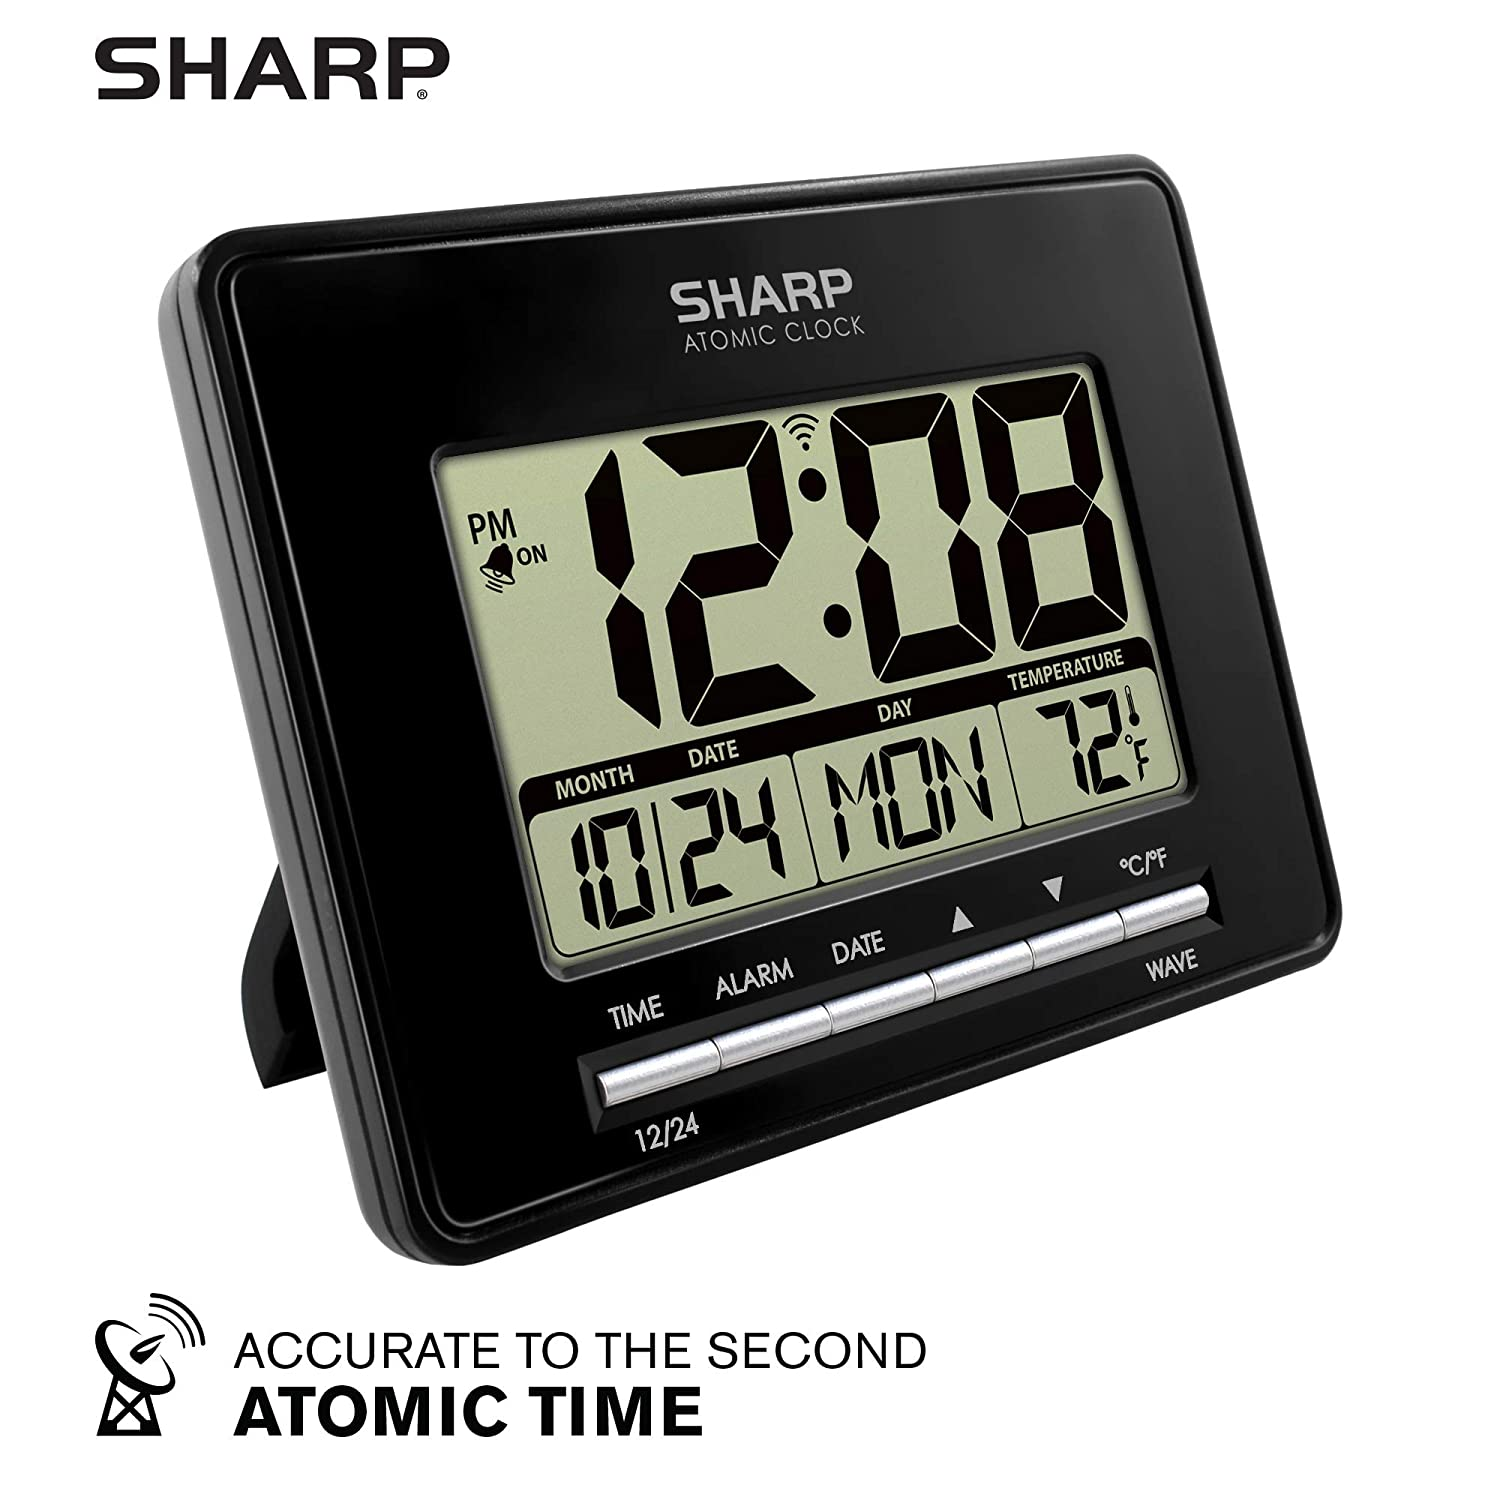 Sharp Atomic Desktop Clock – Auto Set Digital Alarm Clock